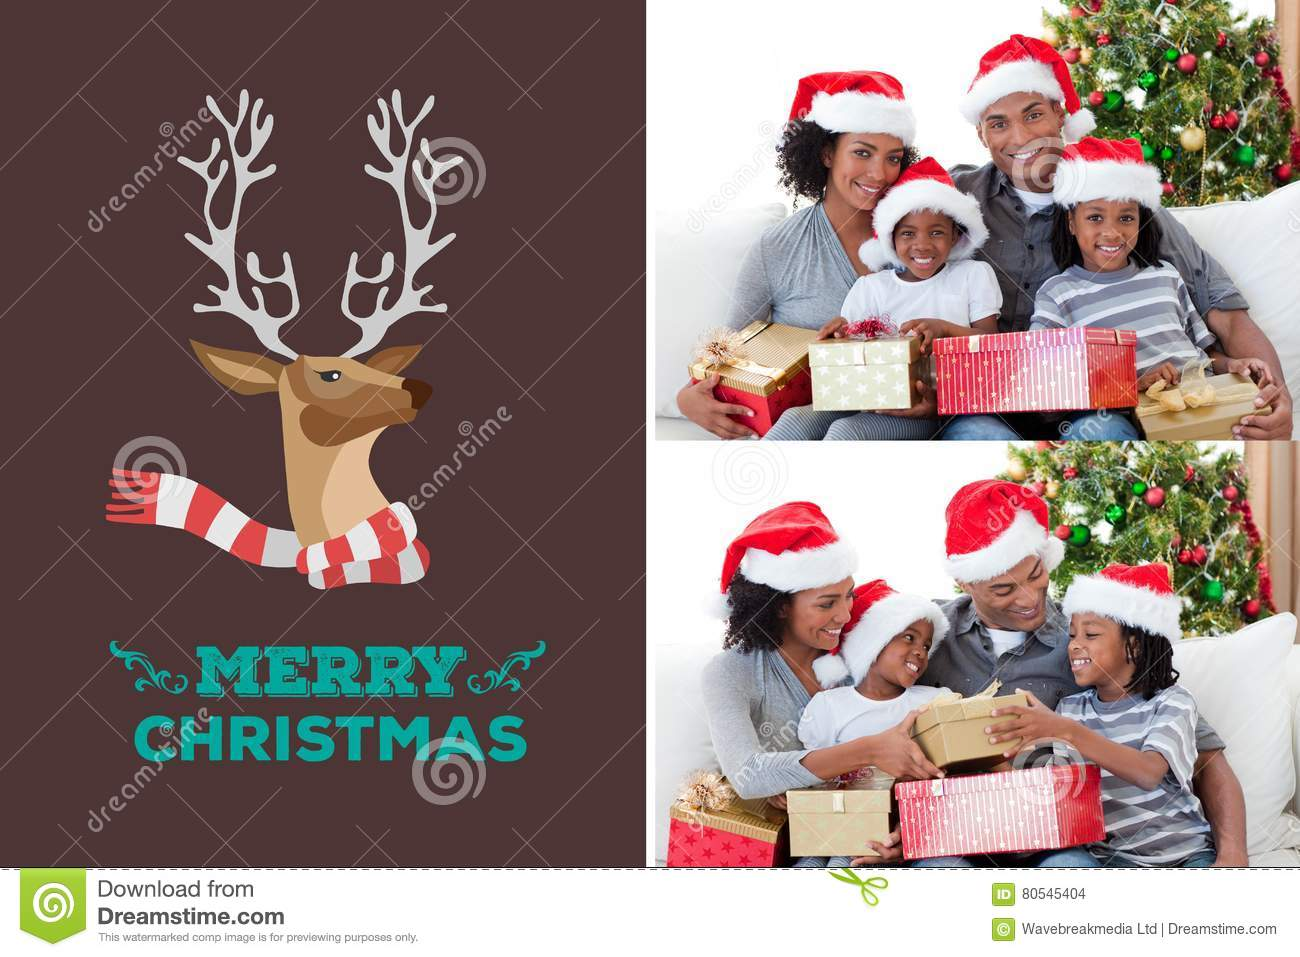 Happy Family And Christmas Message Design Stock Photo - Image of ...